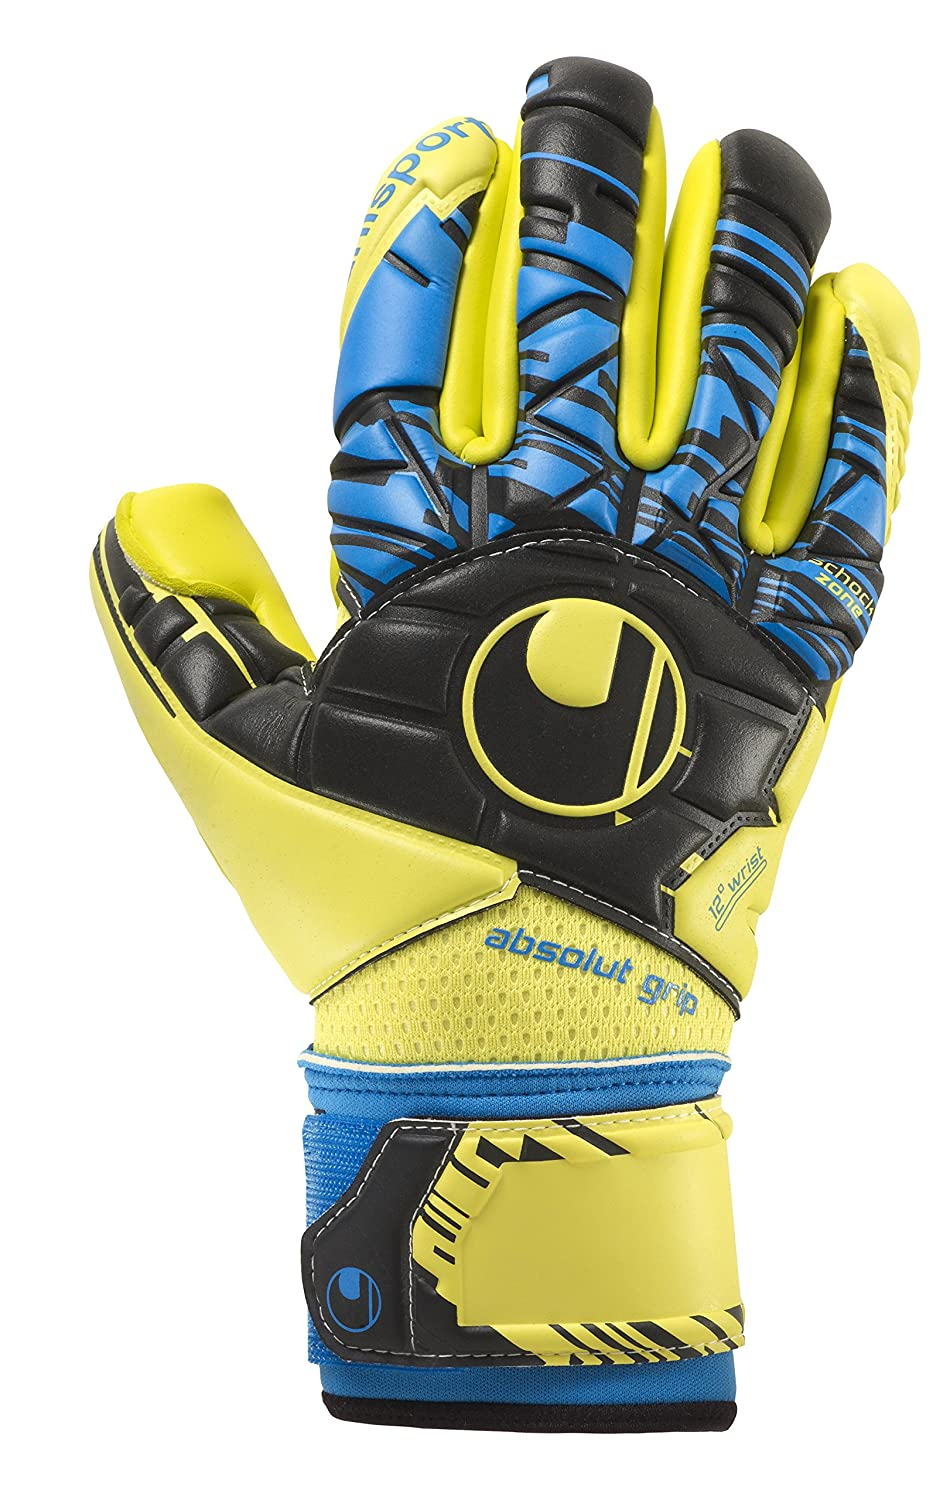 Uhlsport Herren Speed Up Now Absolutgrip Finger Surround Torwarthandschuhe